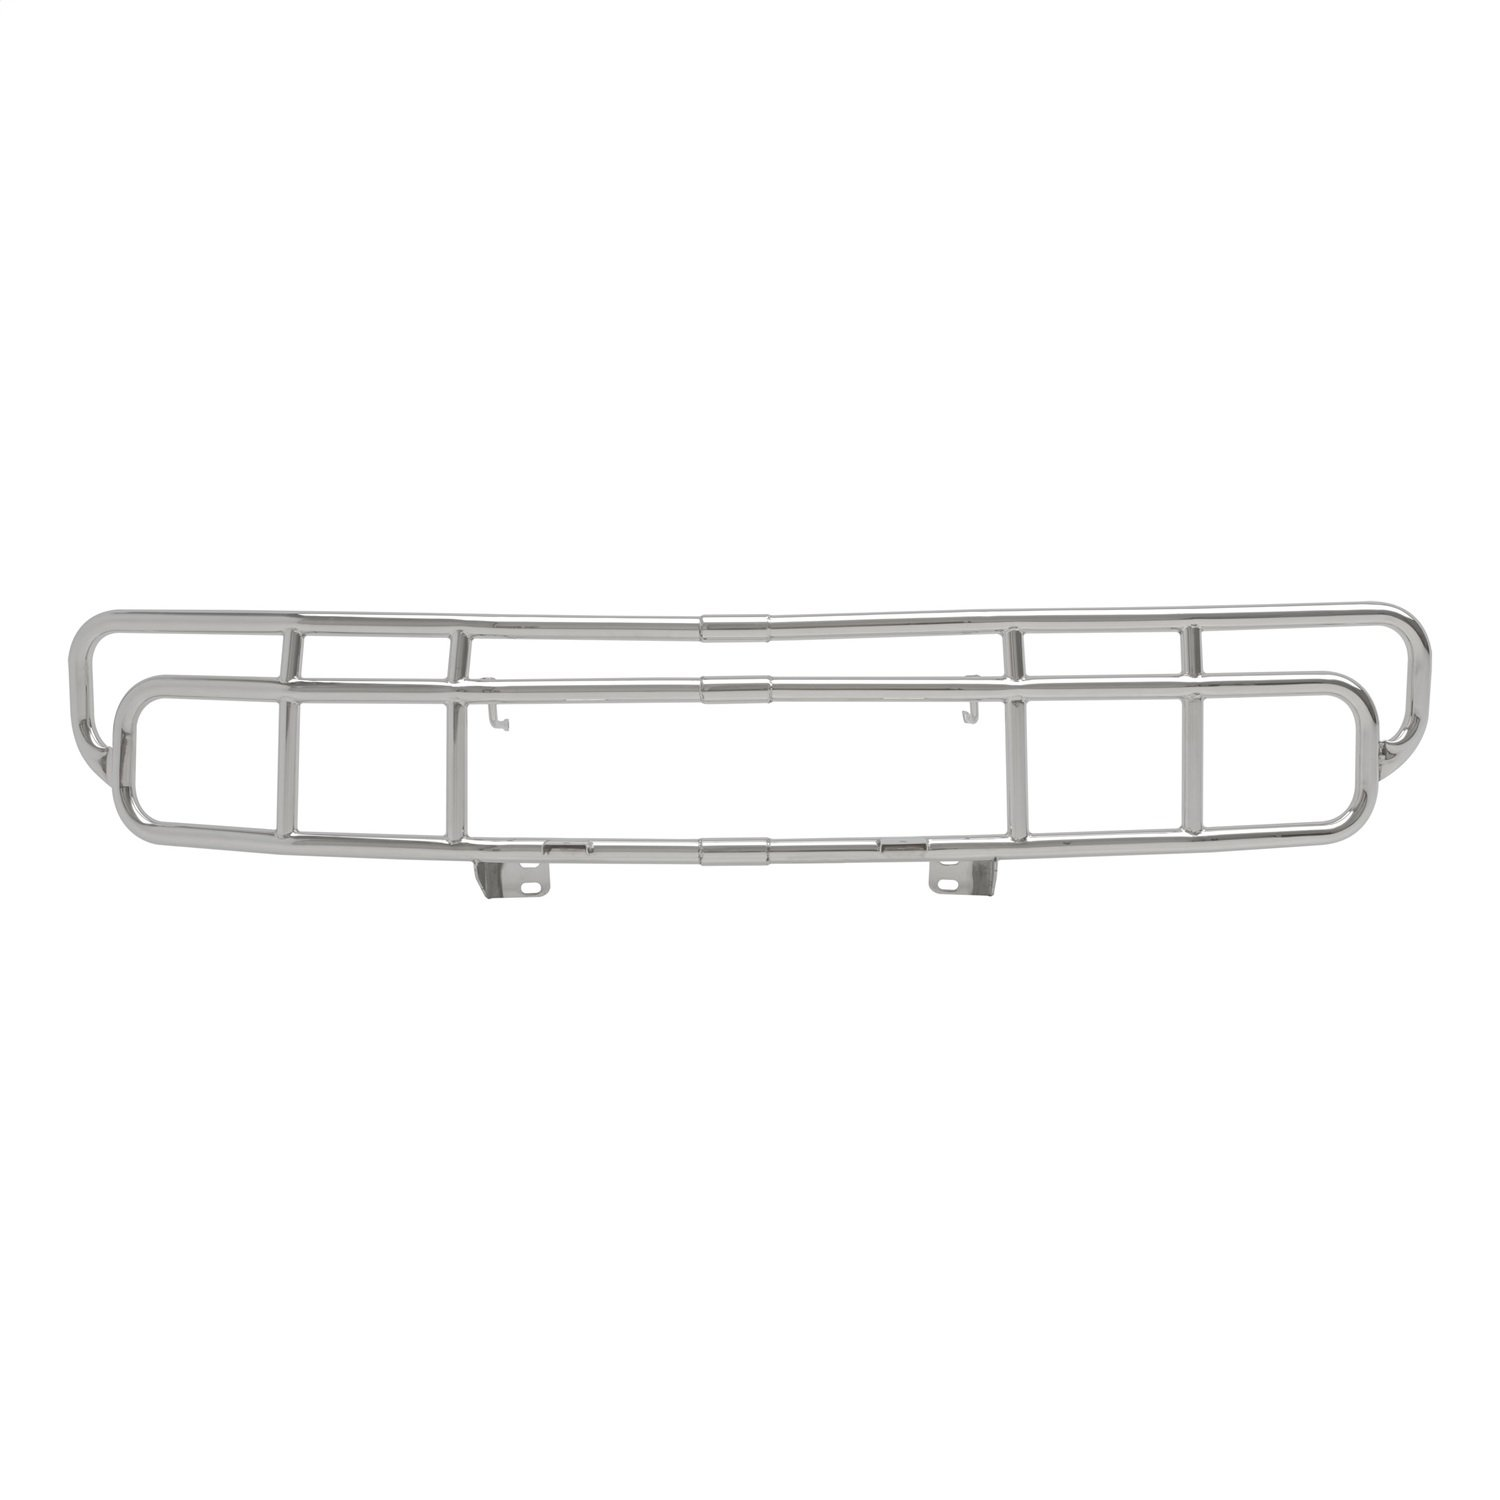 Aries 4076-2 Stainless Steel Grille Guard